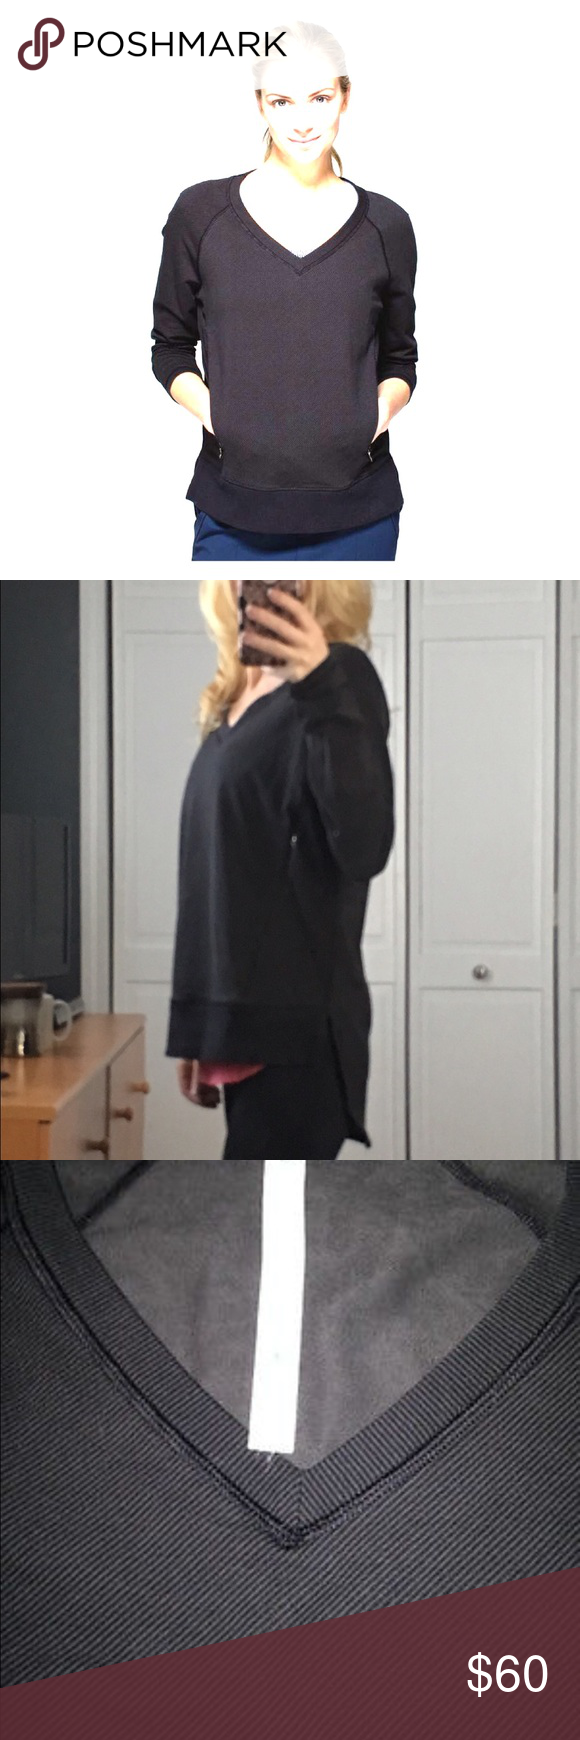 Lululemon After Asana Pullover Great loose fitting sweatshirt. No visible signs of wear and tear. Gently used. Covers your butt! Lulu logo in back on bottom left🍋 lululemon athletica Tops Sweatshirts & Hoodies